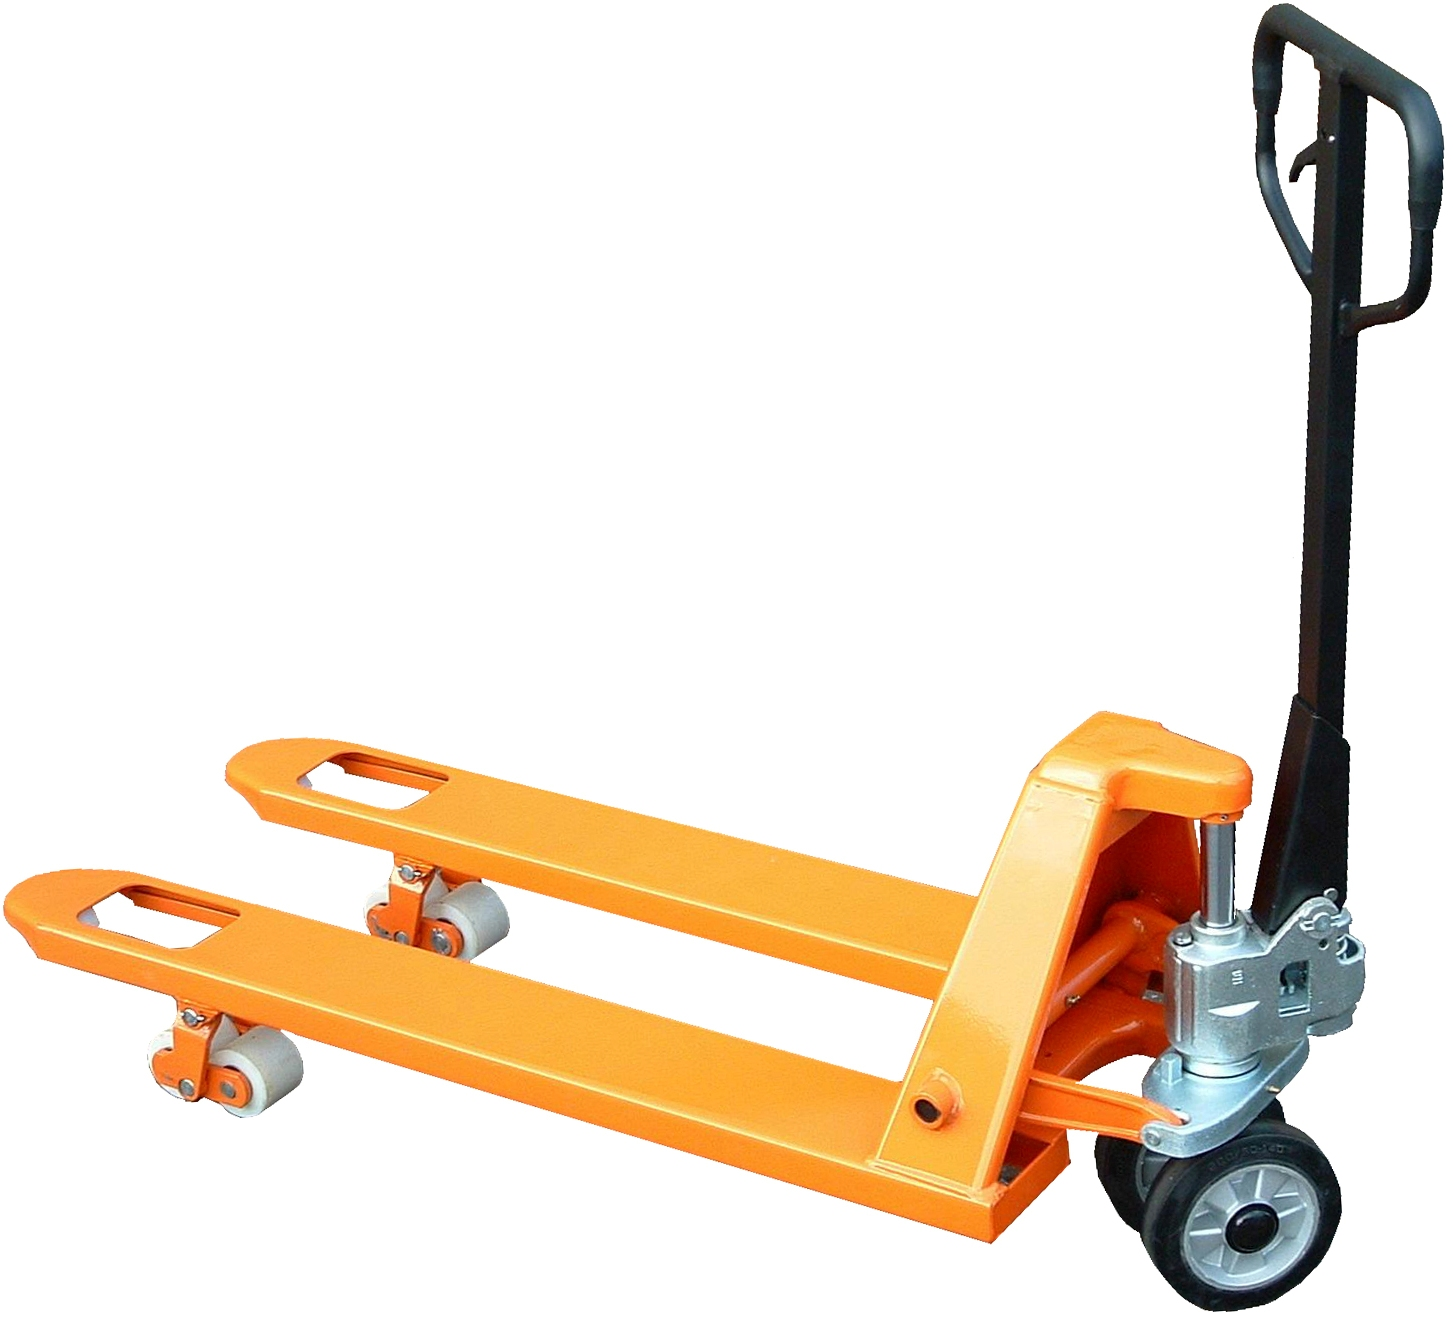 Hand Pallet Truck additionally Dirt Bike Chain Roller Tensioner likewise Three Gears Clip Art as well Bar Mechanism 16 Intake Rollers 17 Pulley Mechanism For Lifting further Plastic Nylon Roller Wheel Bearings. on roller pulley